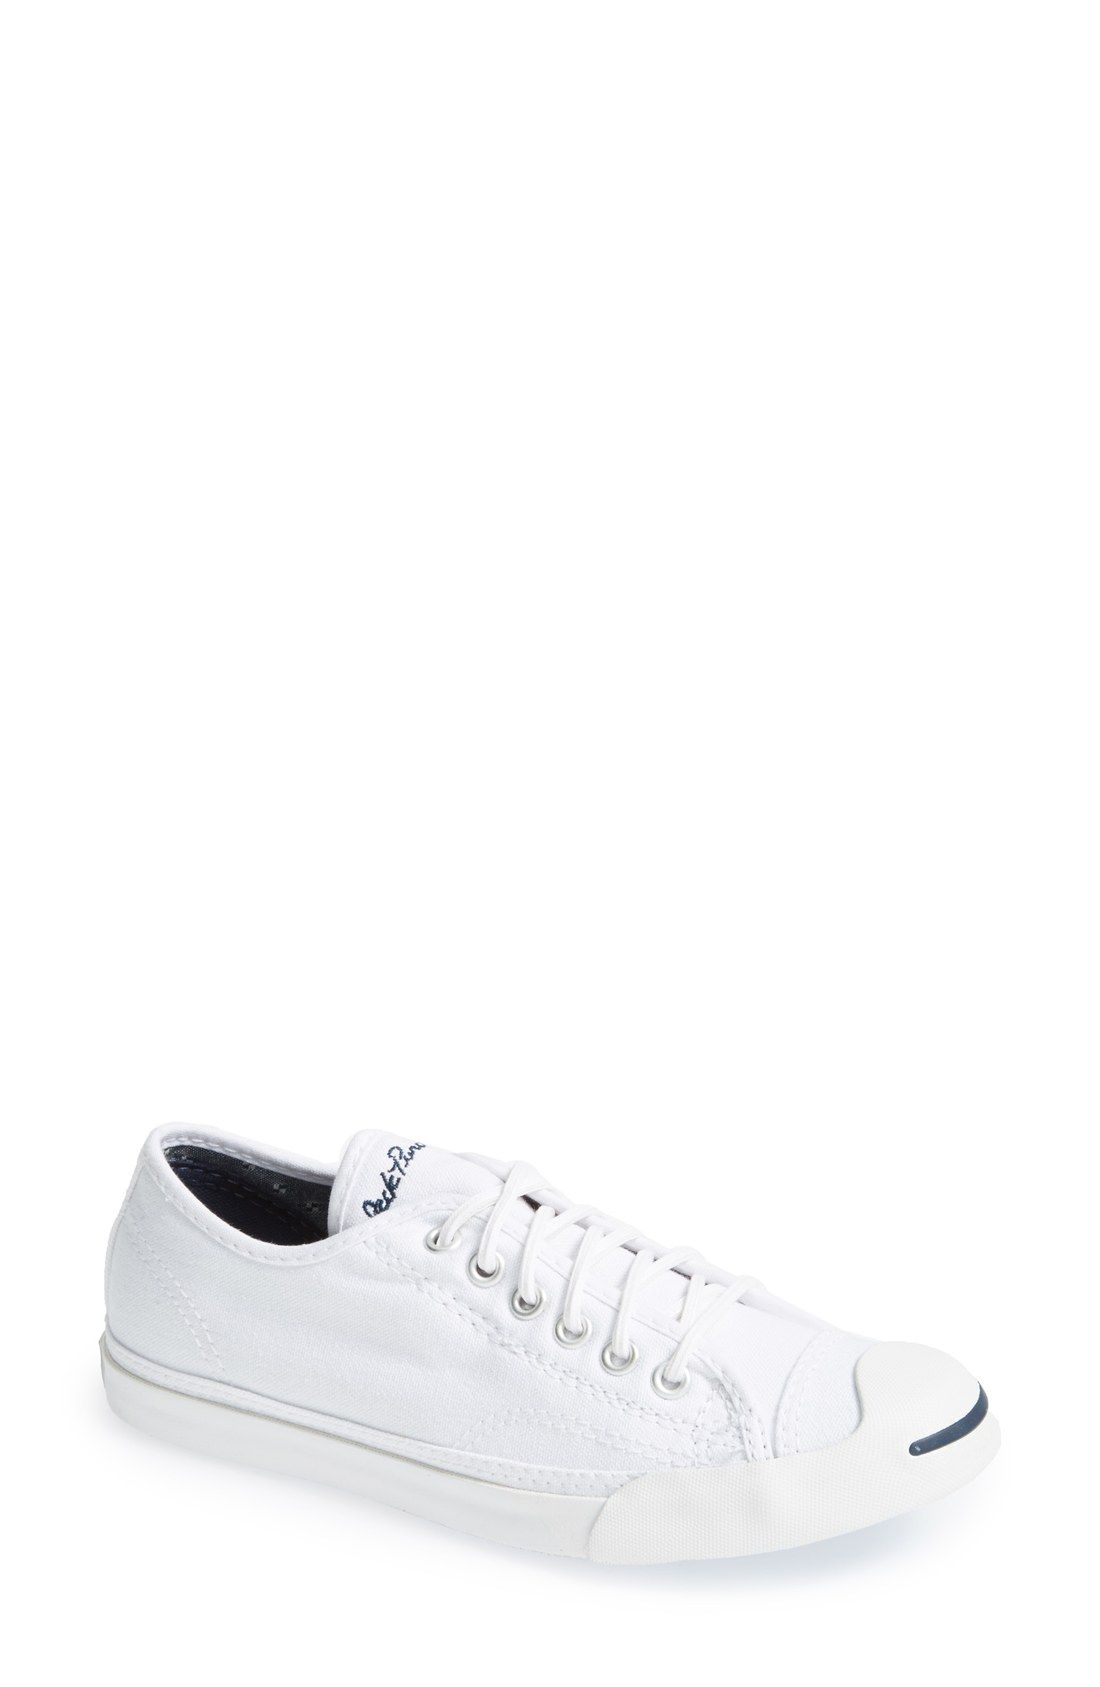 Converse Milly Sport big sale online outlet discount sale wW2nW